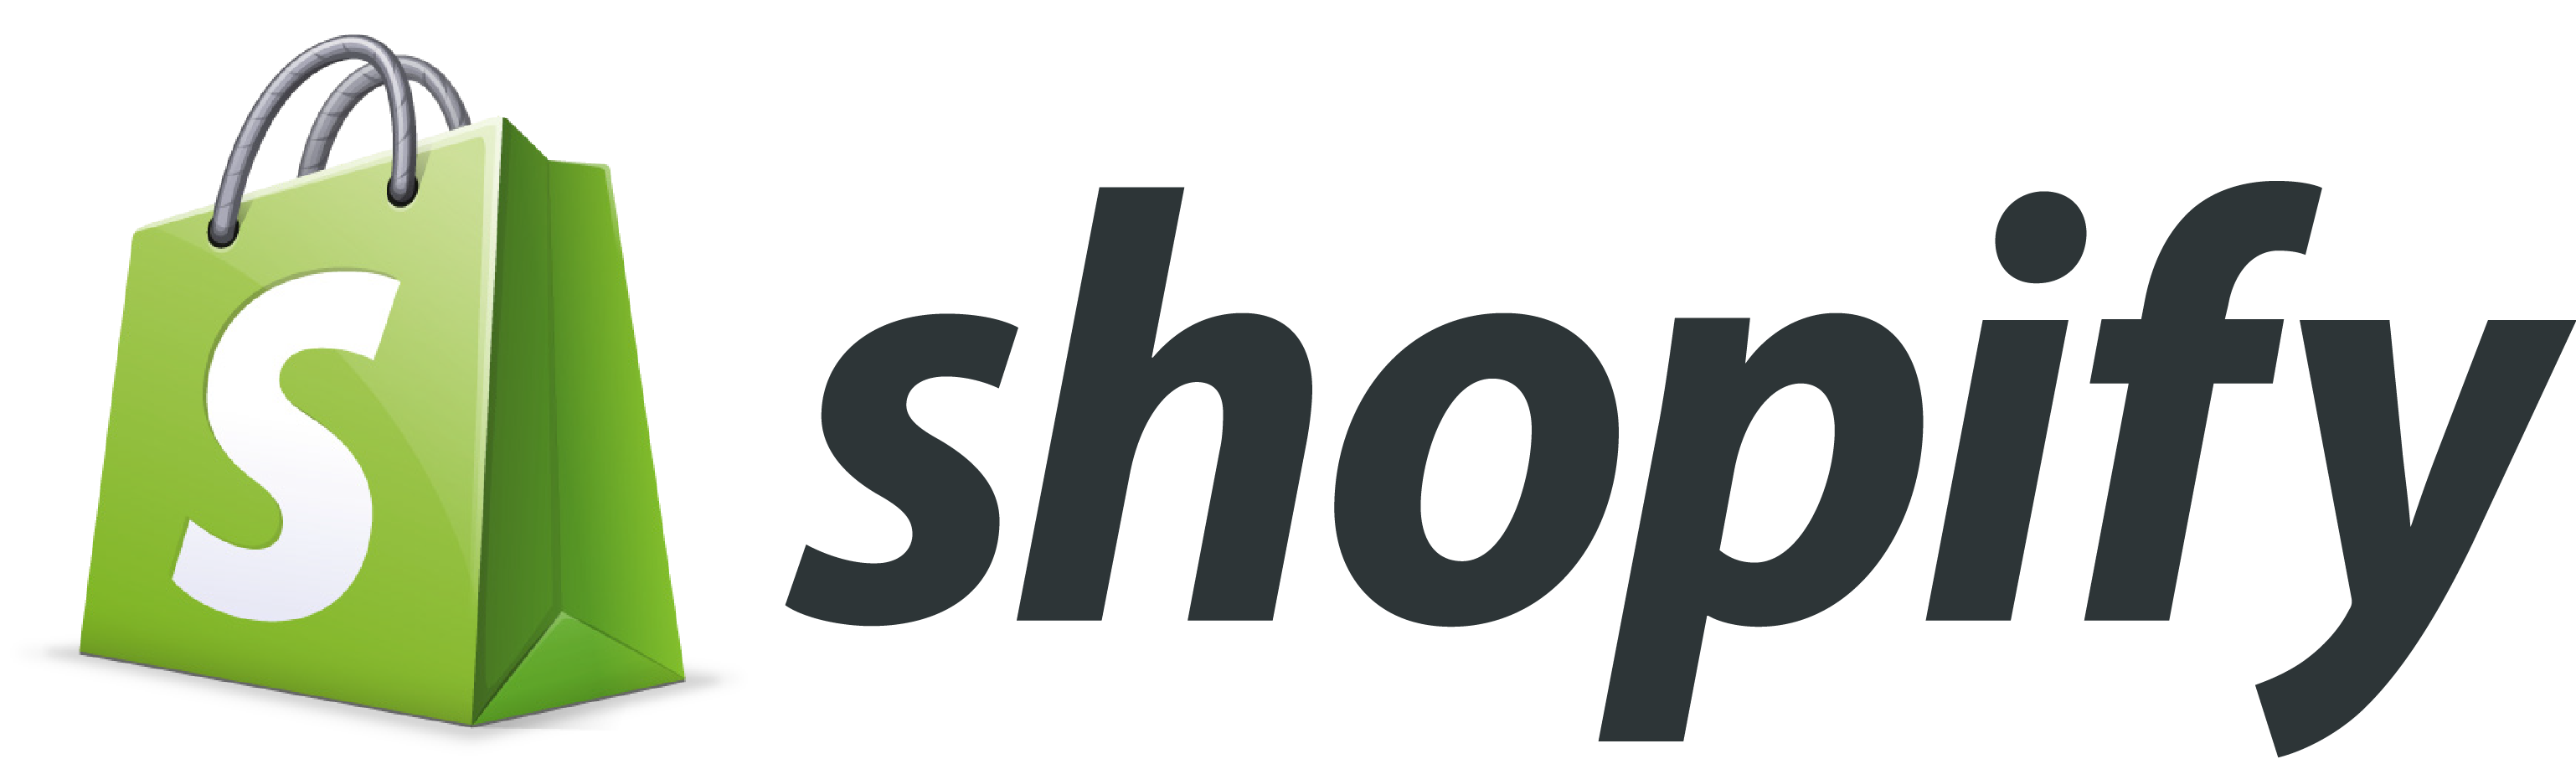 shopify ecommerce erp solutions